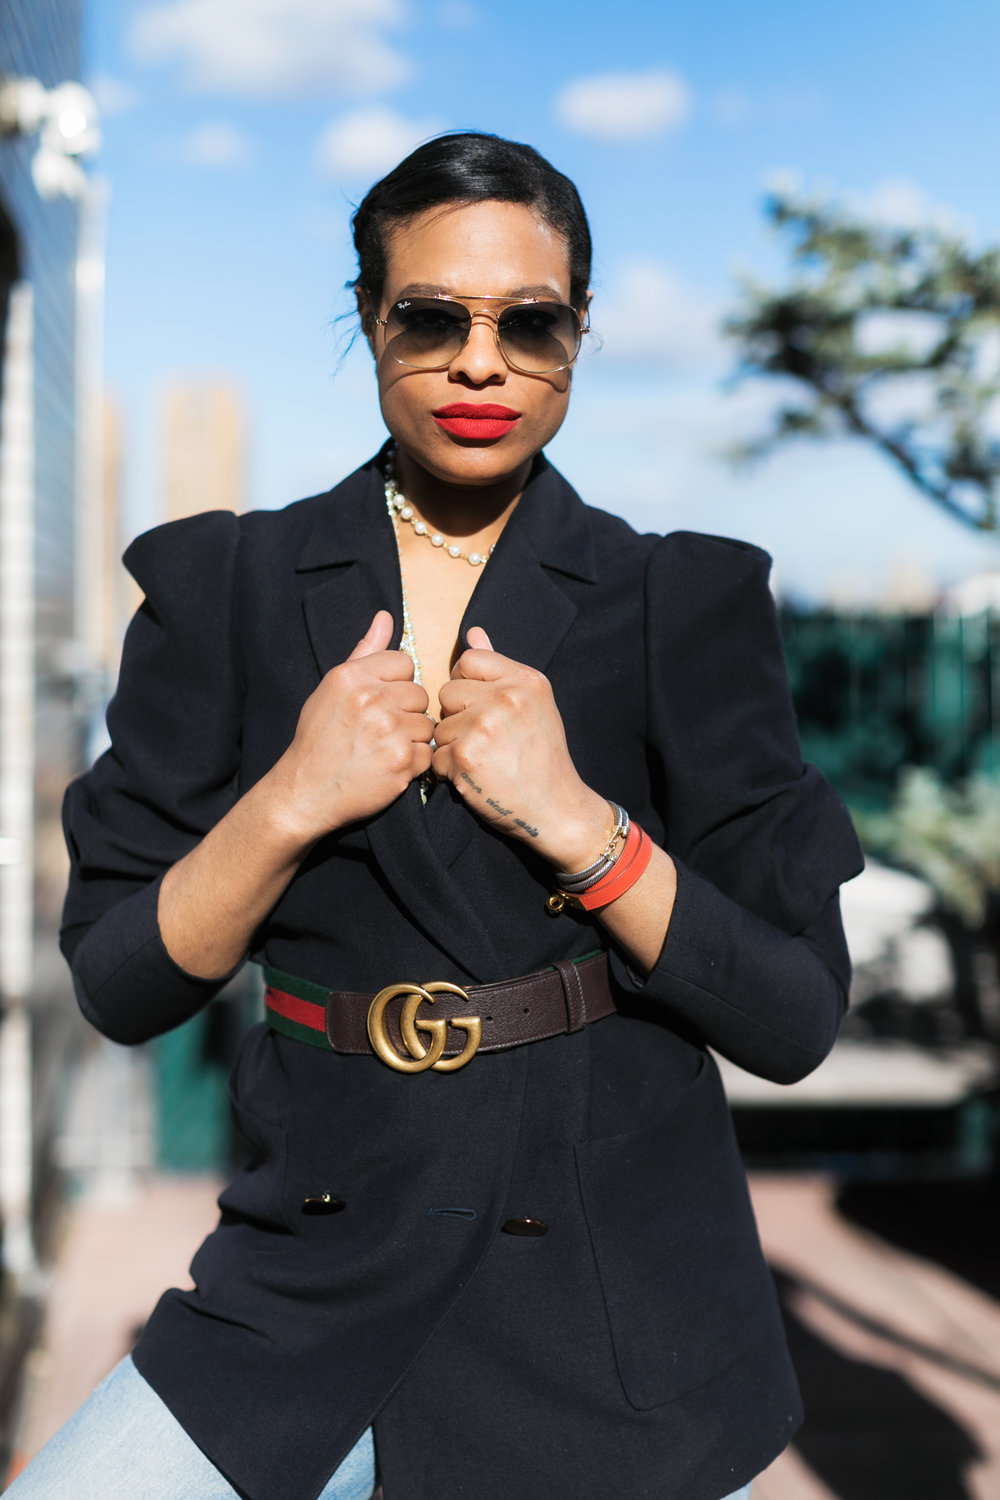 Blazer: Zara. Pearl necklaces: Chanel. Bra: Victoria's Secret. Belt: Gucci. Jeans: Re/Done. Shoes. Prada. Sunglasses: Ray-Ban.